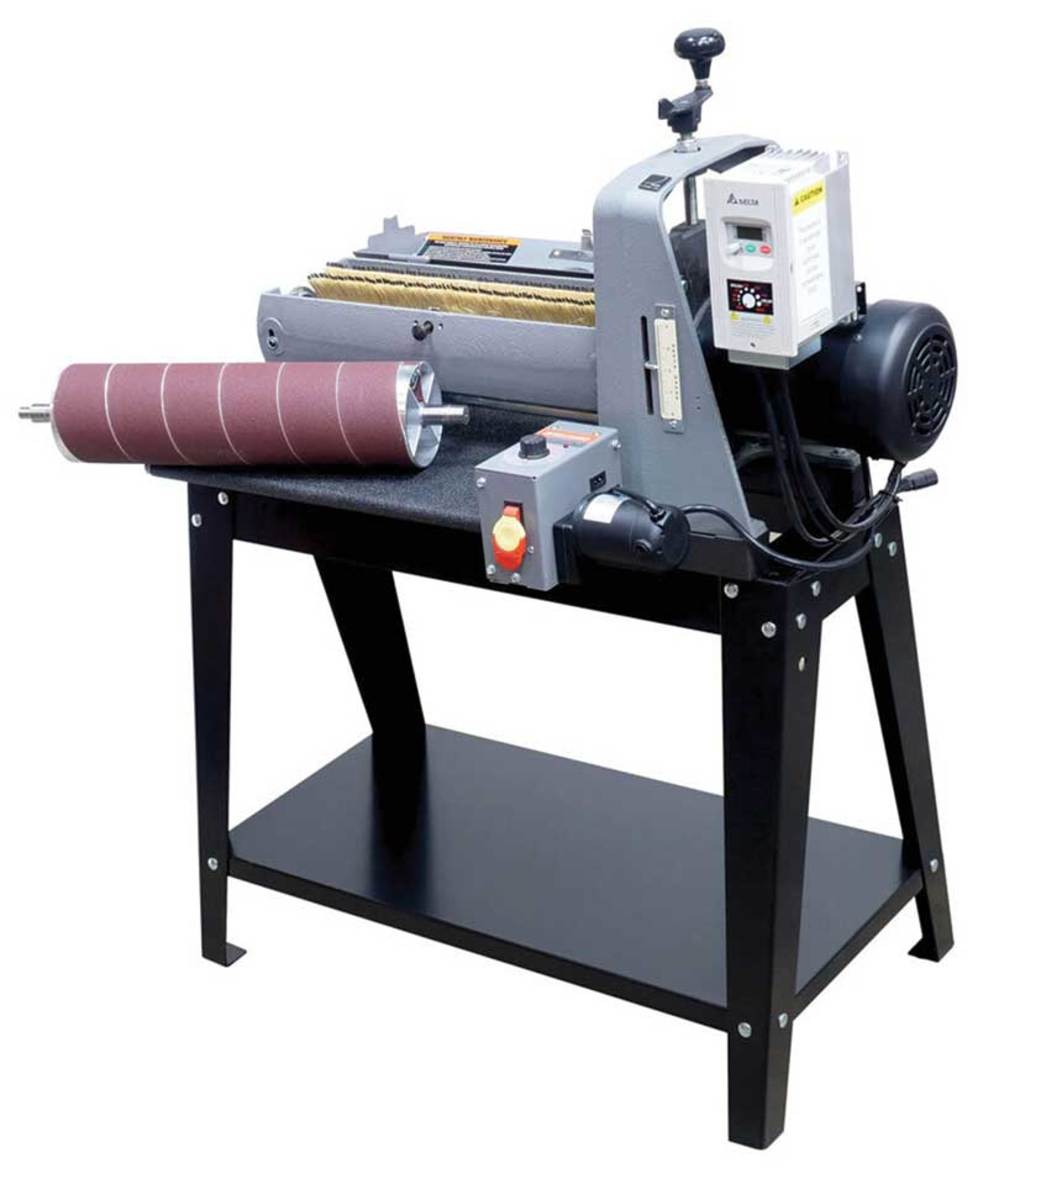 The SuperMax 19-38 brush/drum sander, available from Laguna Tools.